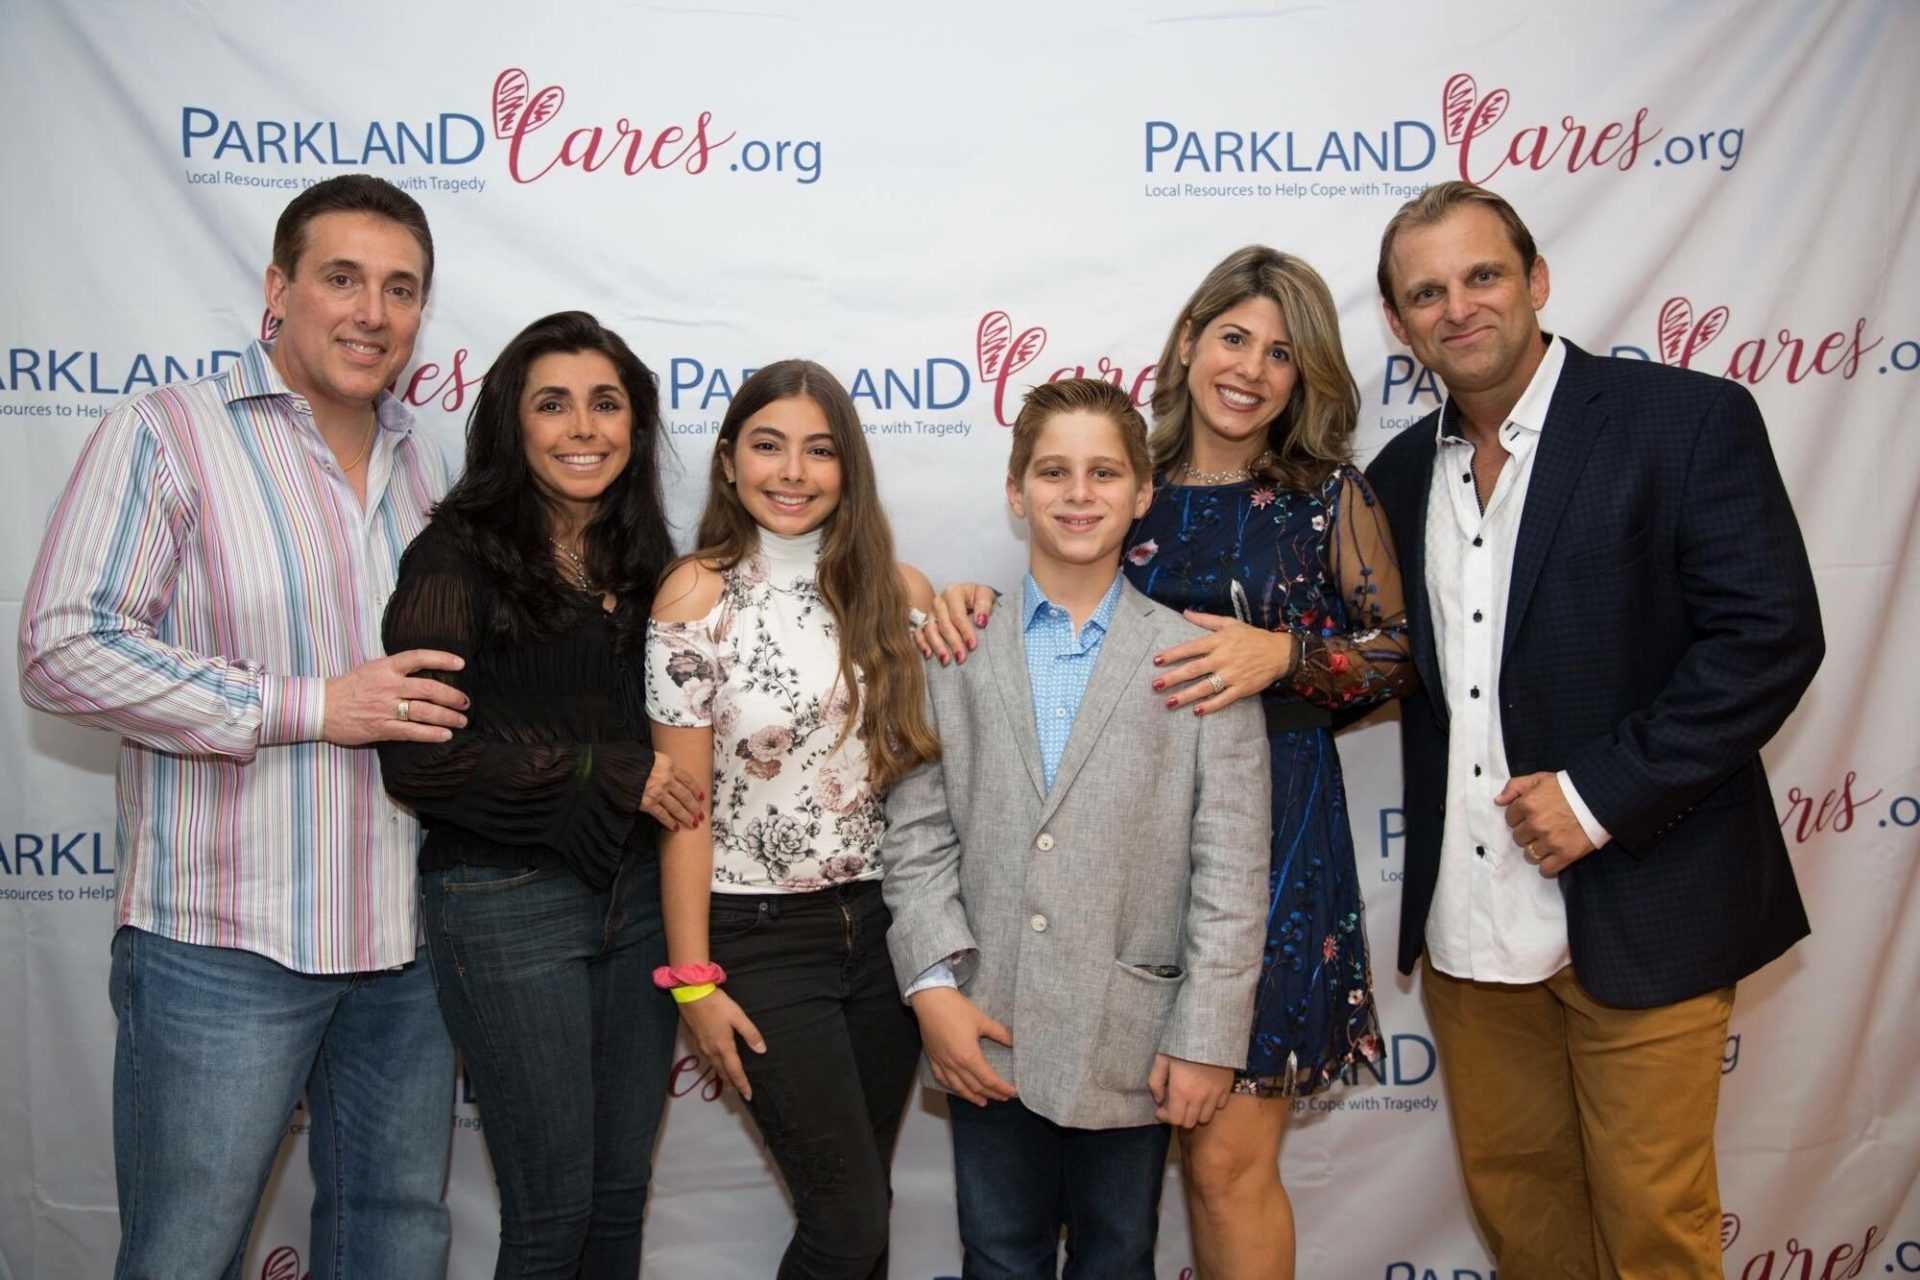 Dan Solomon and family at Parkland Cares event